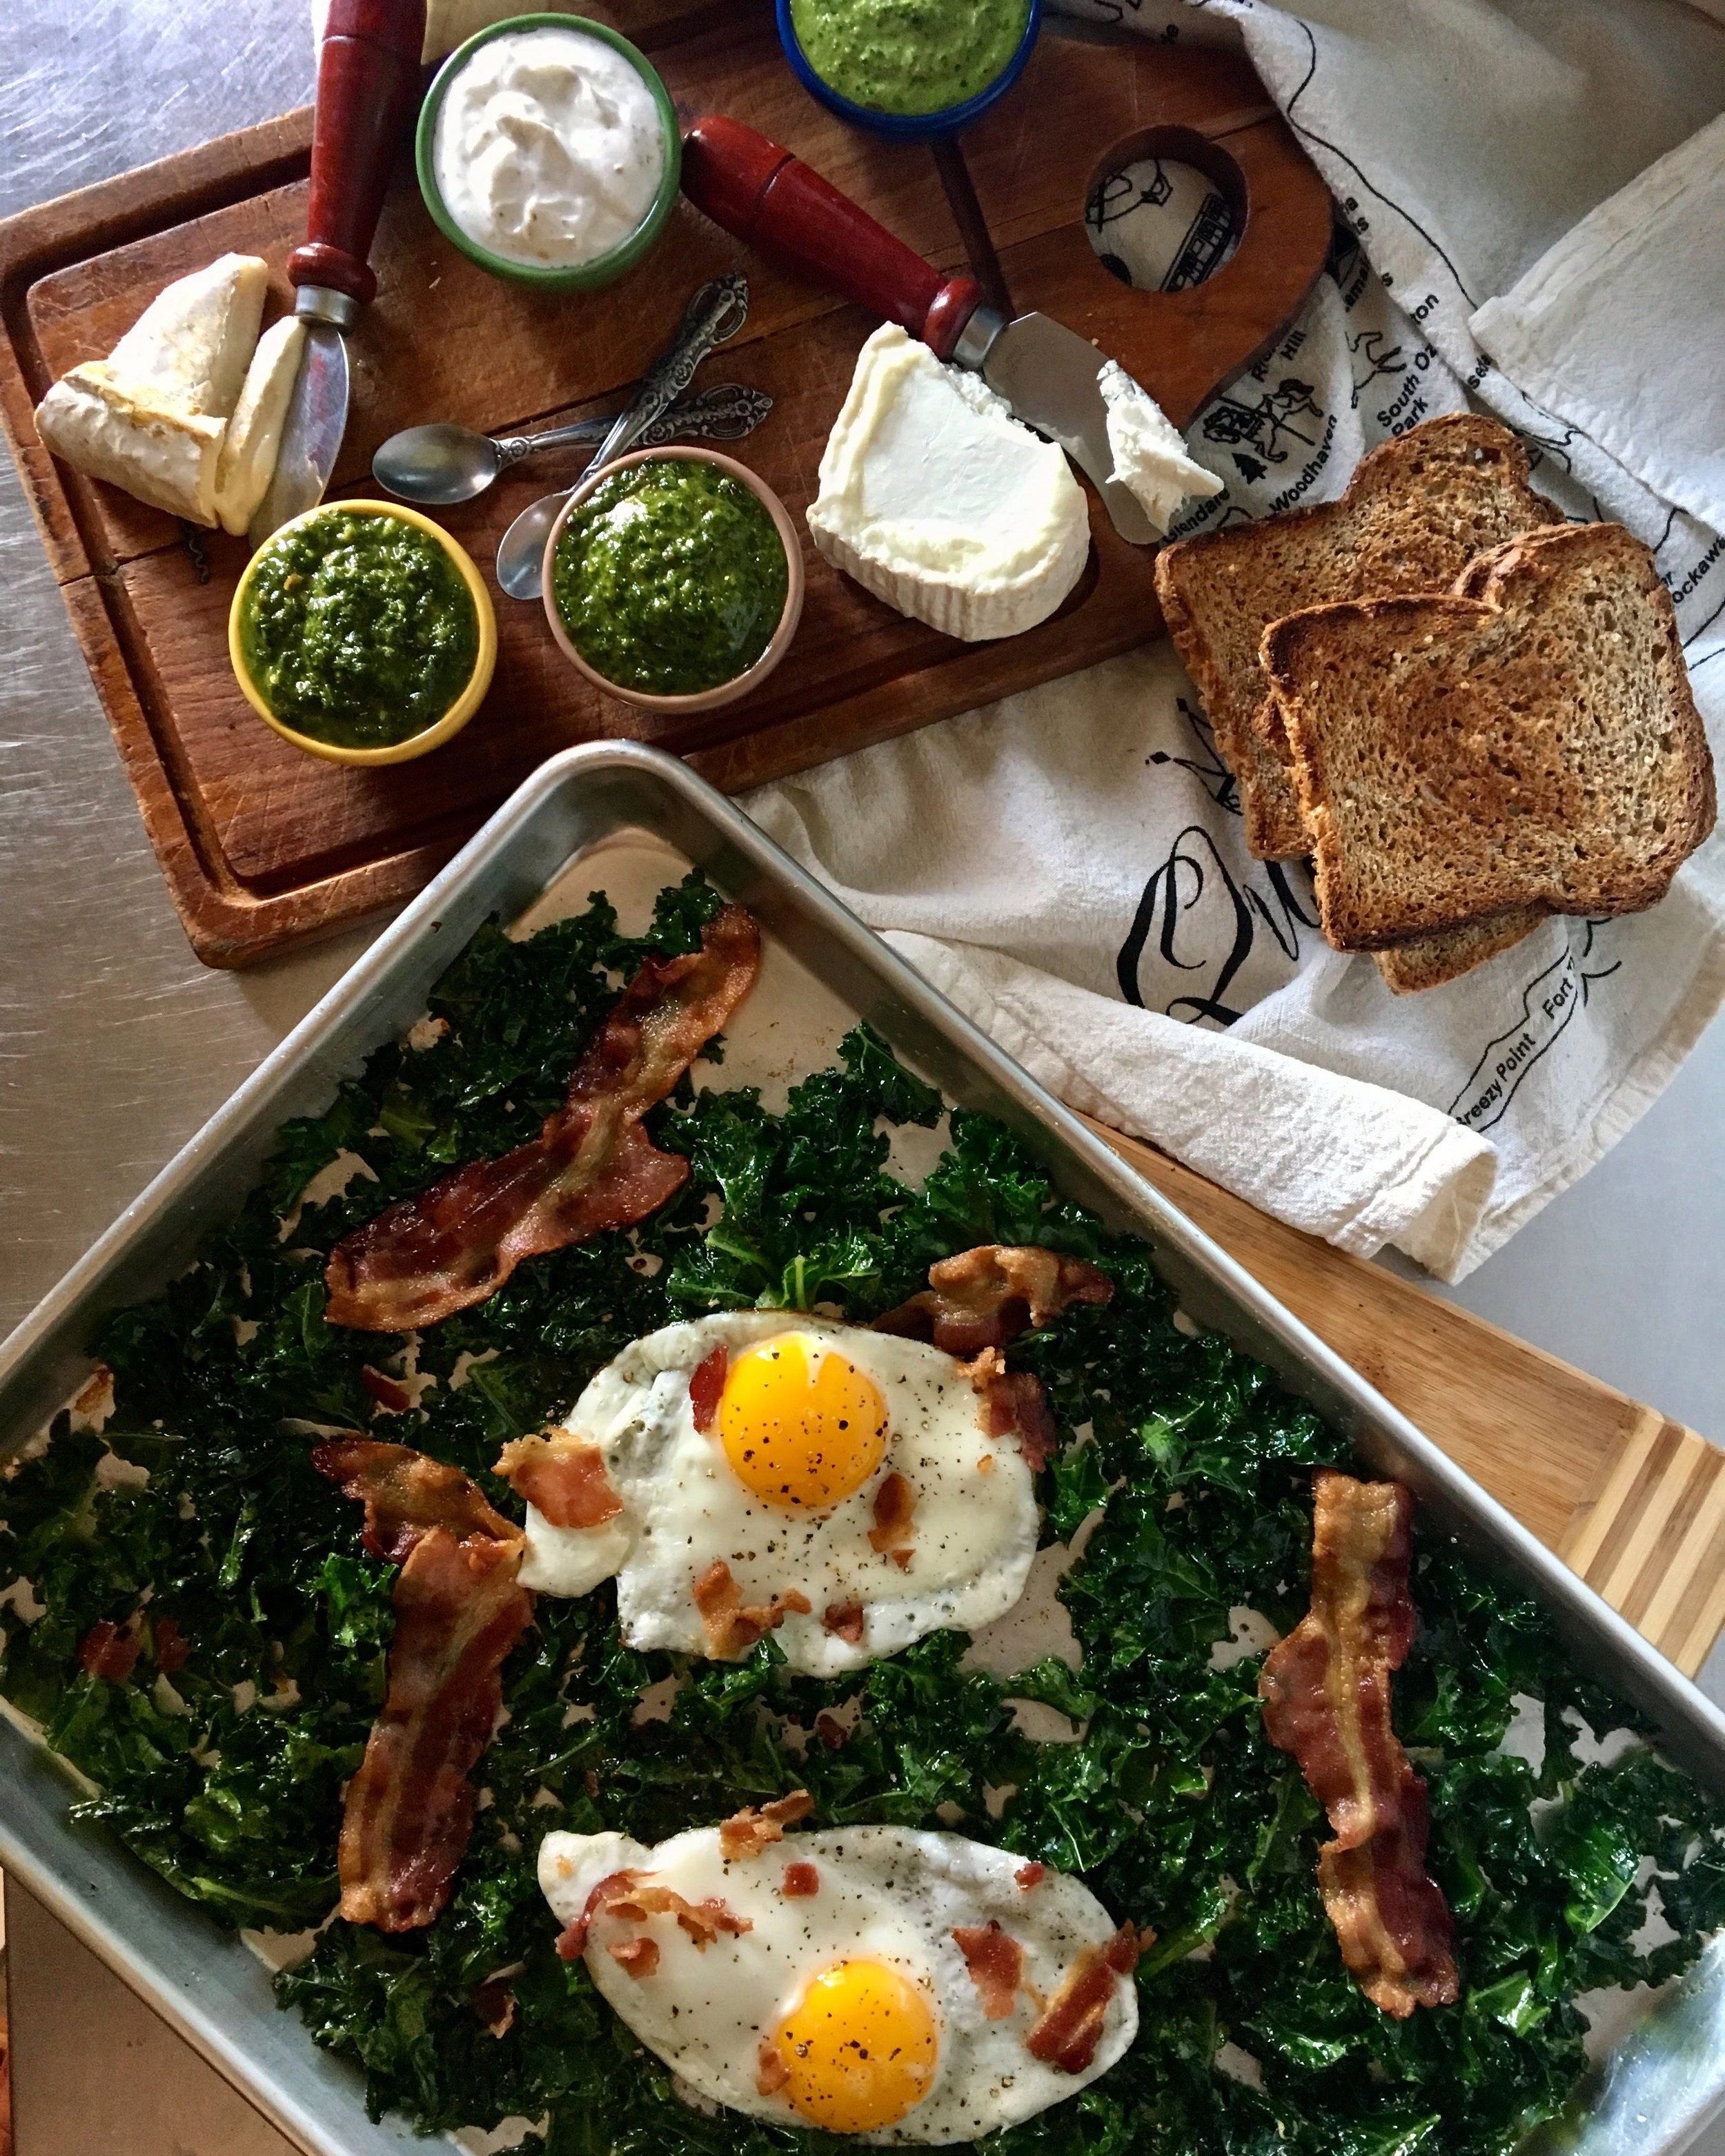 Brunch: All of the trimmings + Bacon Maple Kale with Sunnyside Eggs